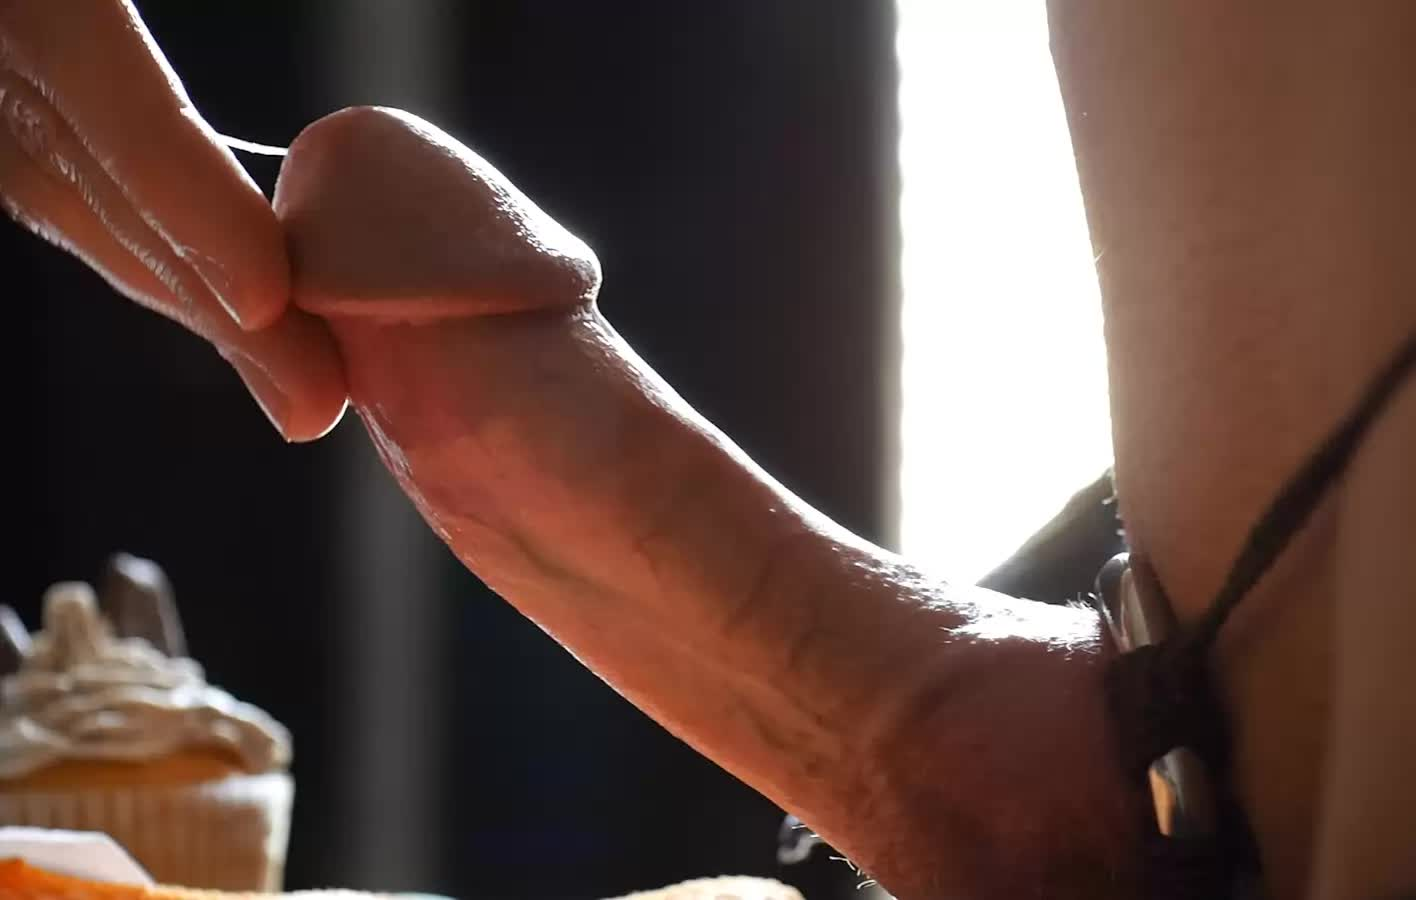 Cumming With No Hands